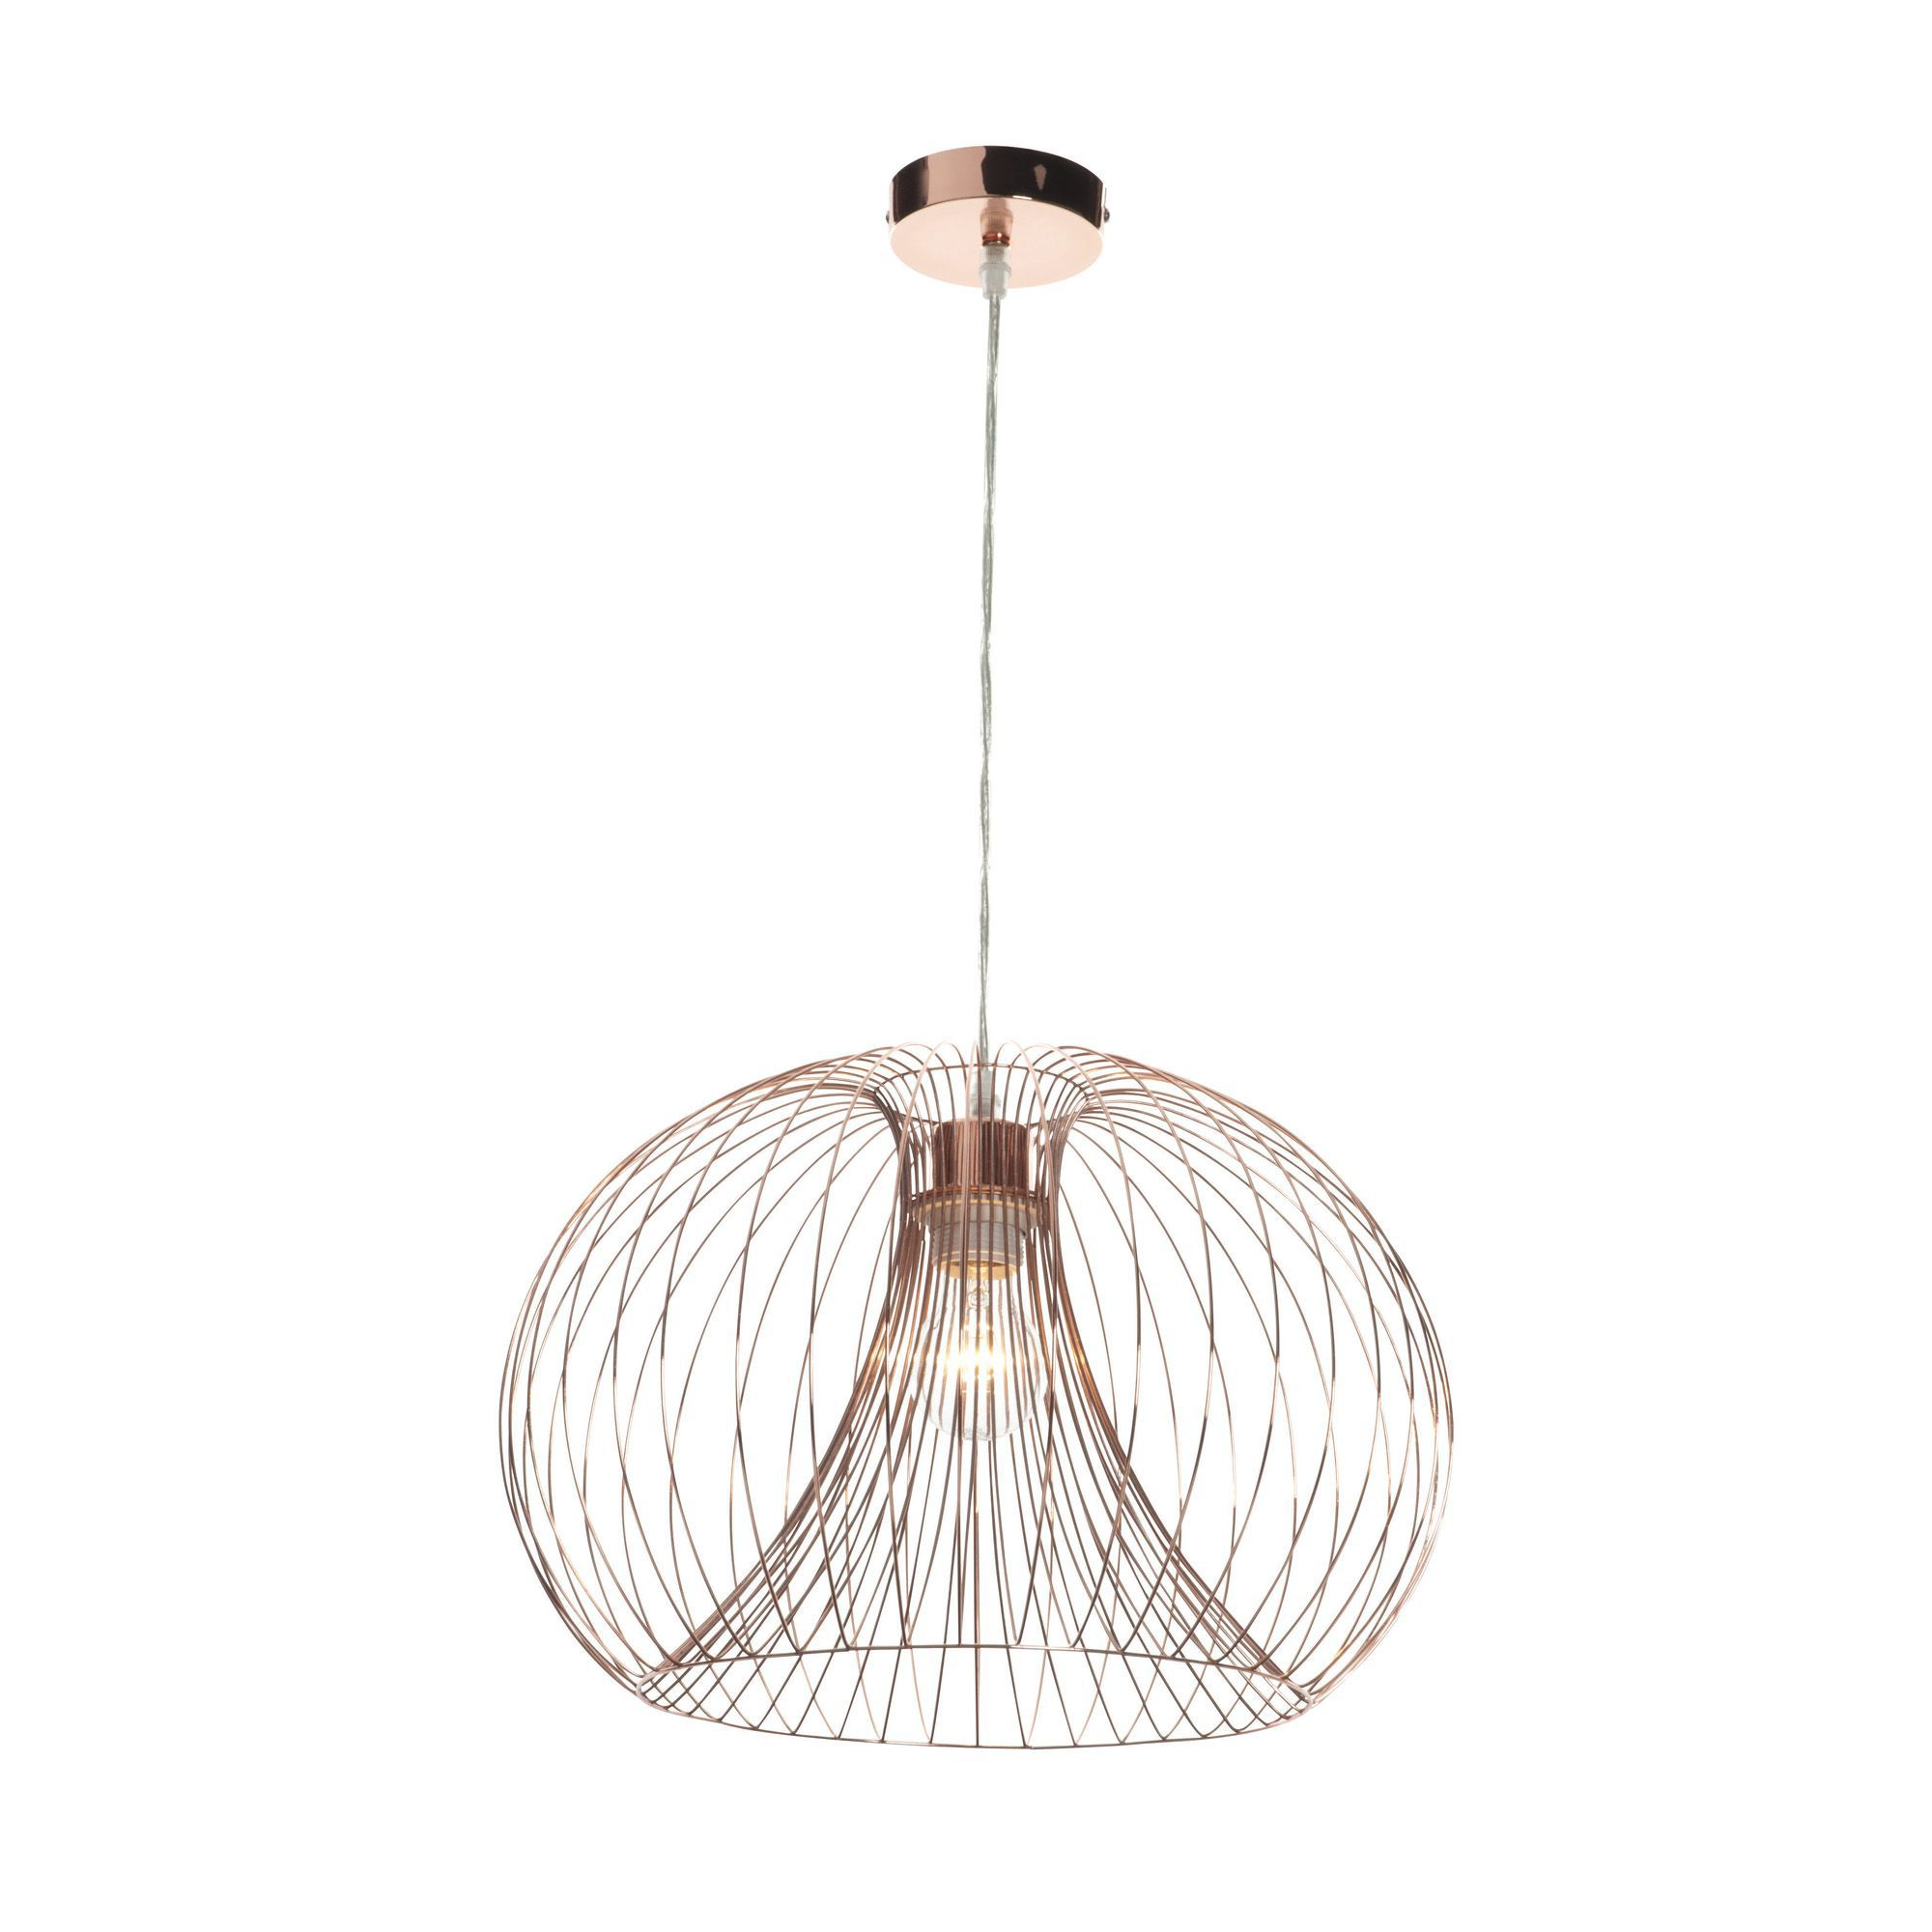 Bathroom Lighting B&Q jonas pendant ceiling light | departments | diy at b&q